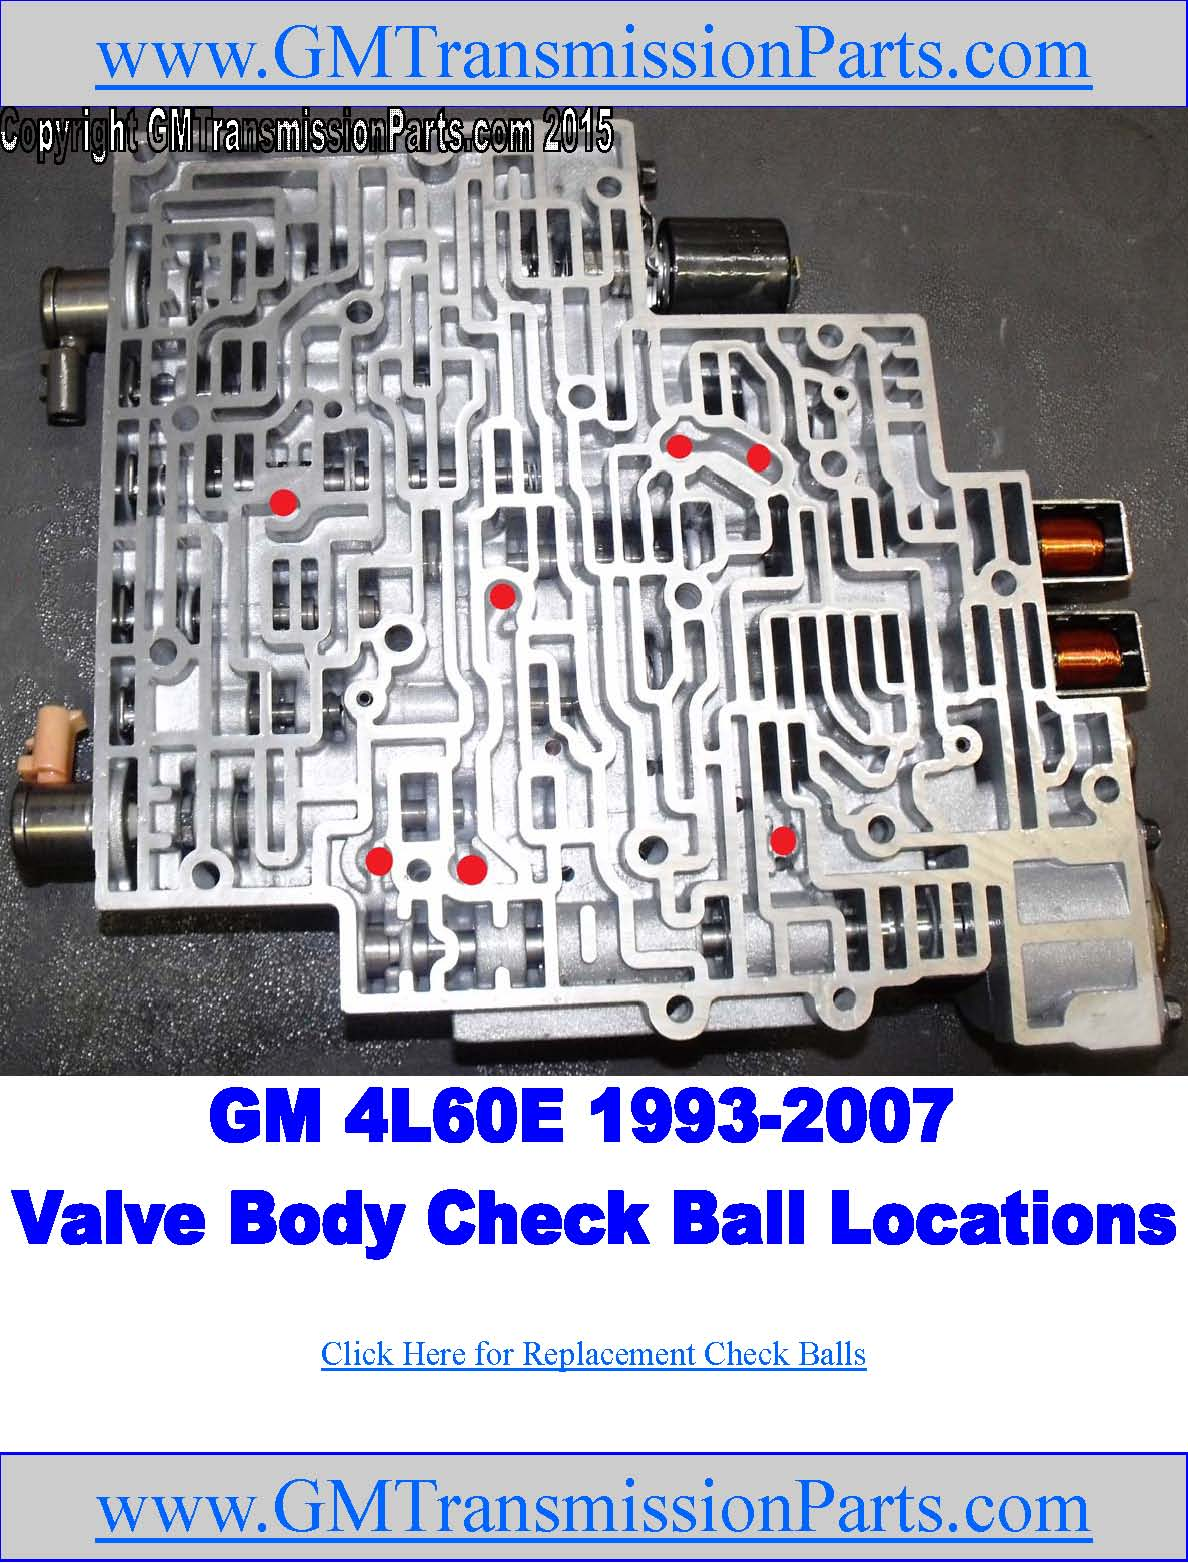 hight resolution of 05 4l60e valve body diagram wiring diagram week 4l60e transmission solenoid diagram 05 4l60e valve body diagram